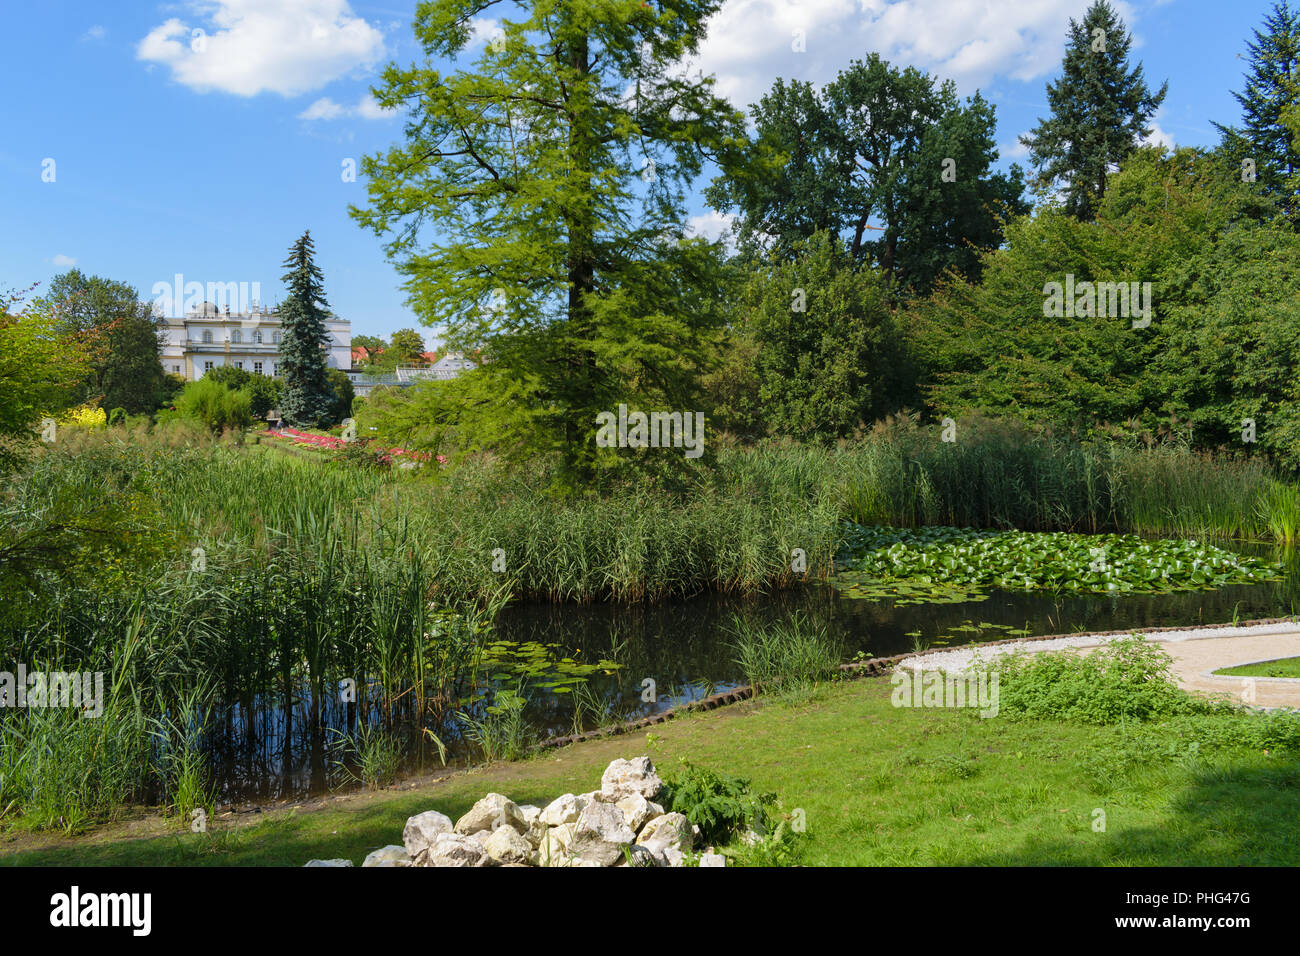 Botanic Garden Of The Jagiellonian University High Resolution Stock Photography And Images Alamy